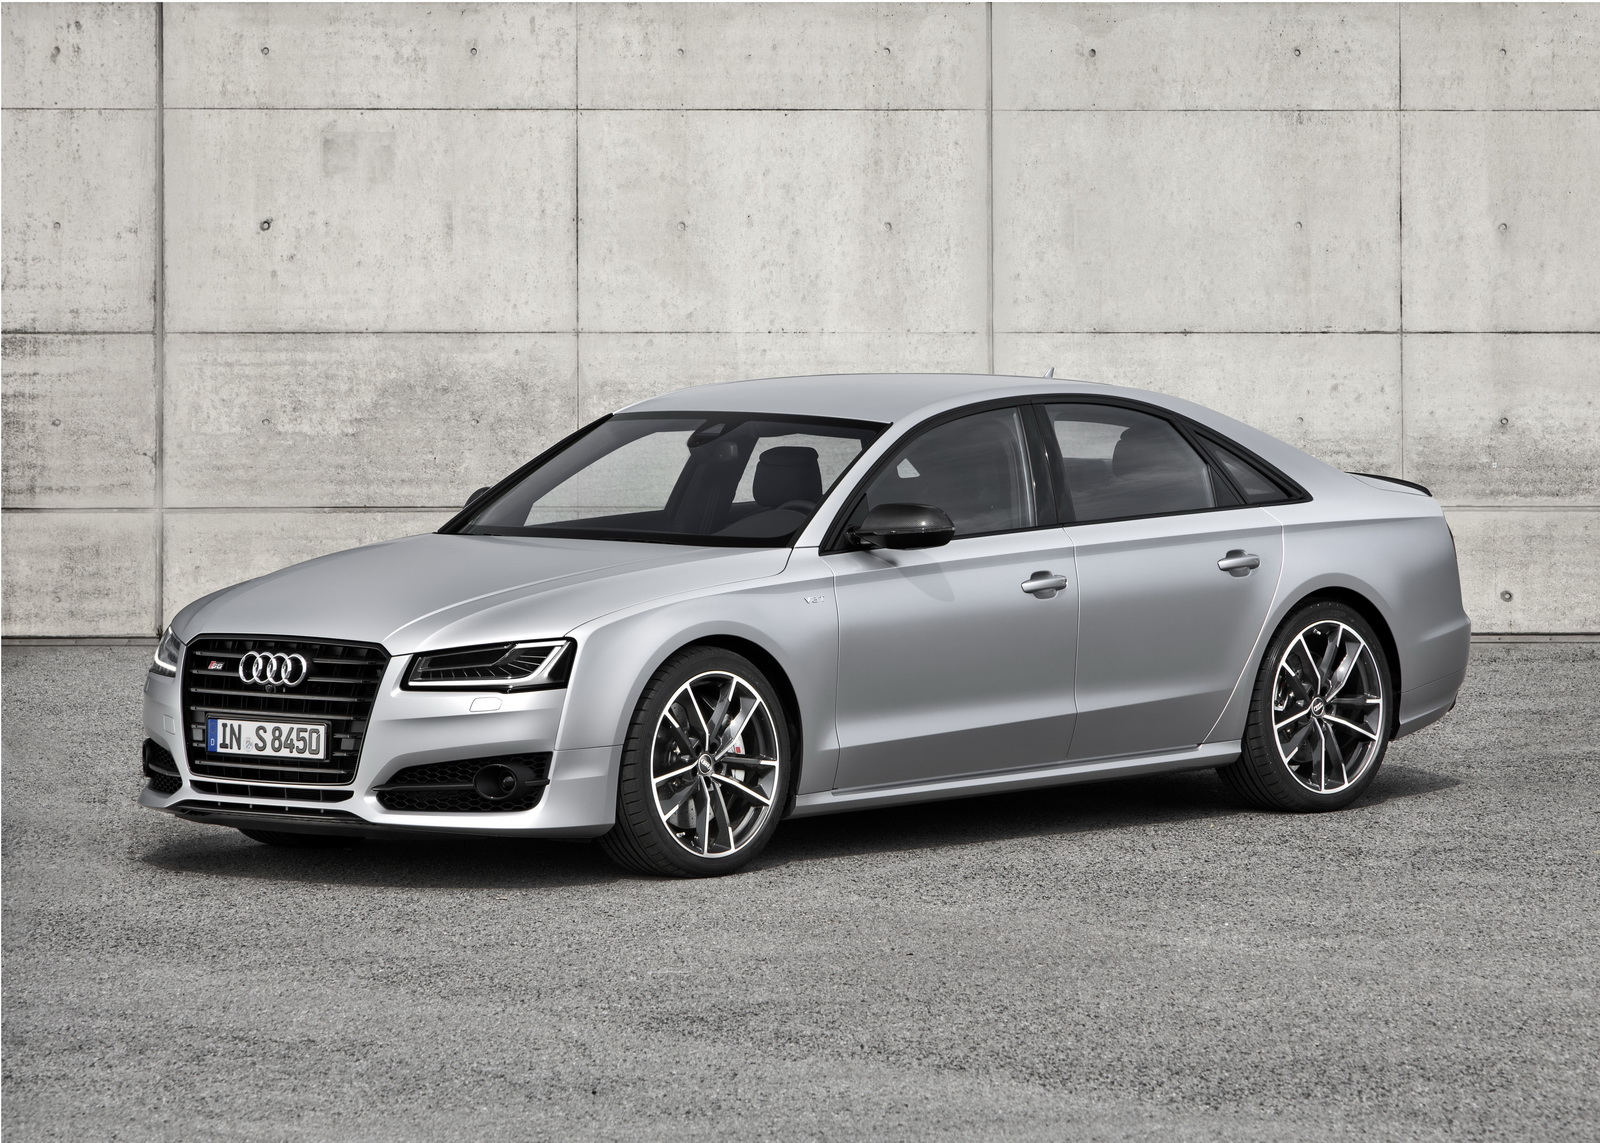 new audi s8 plus brings 605 ponies and 305km h 189mph to the table carscoops. Black Bedroom Furniture Sets. Home Design Ideas